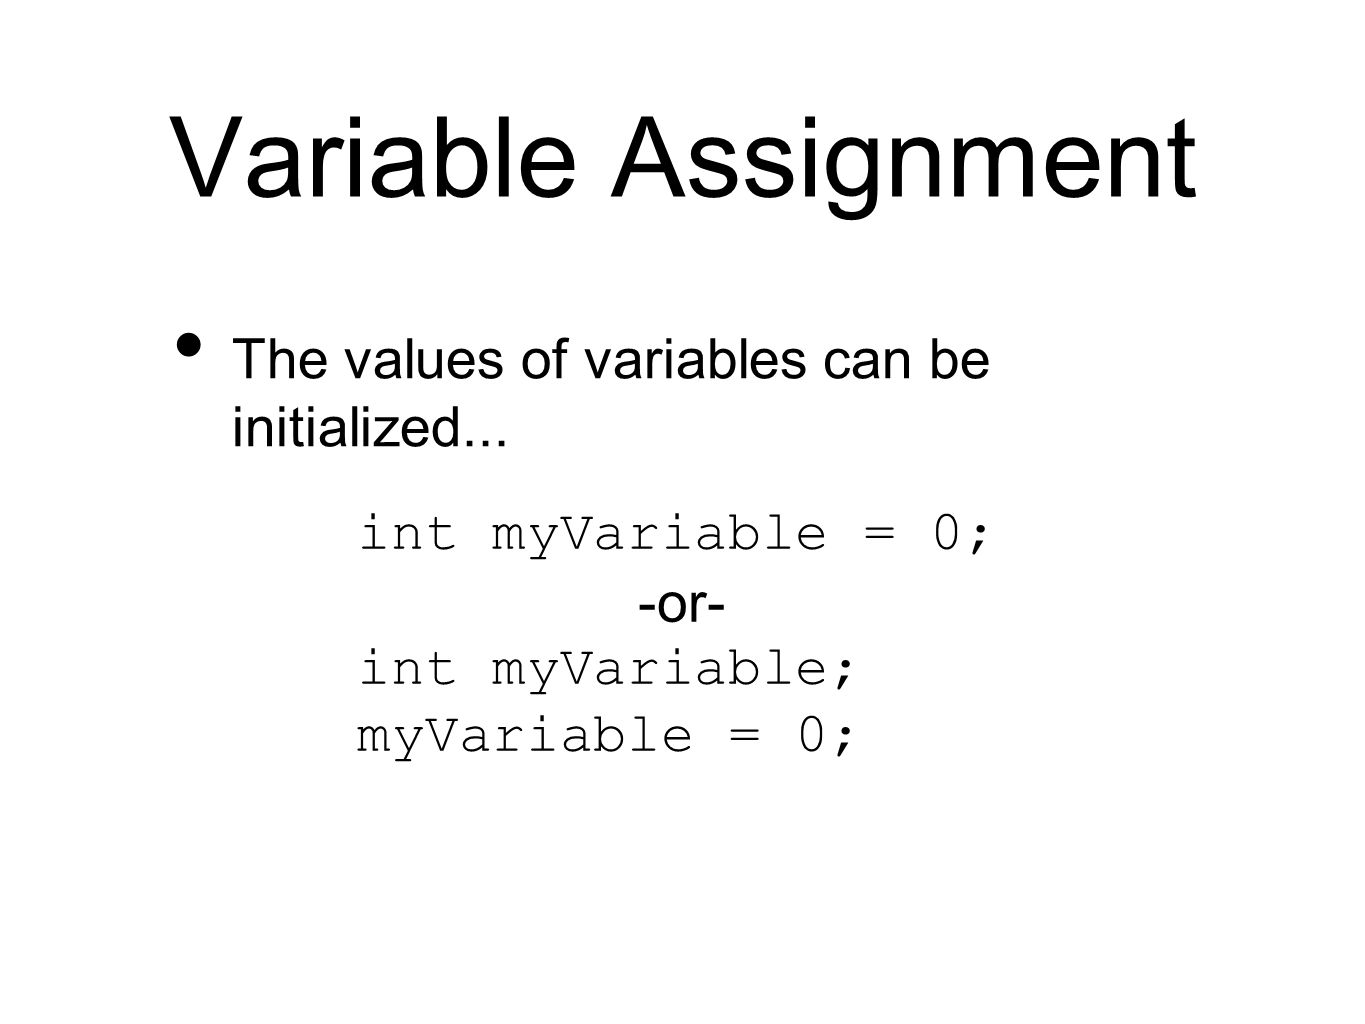 Variable Assignment The values of variables can be initialized... int myVariable = 0; -or- int myVariable; myVariable = 0;